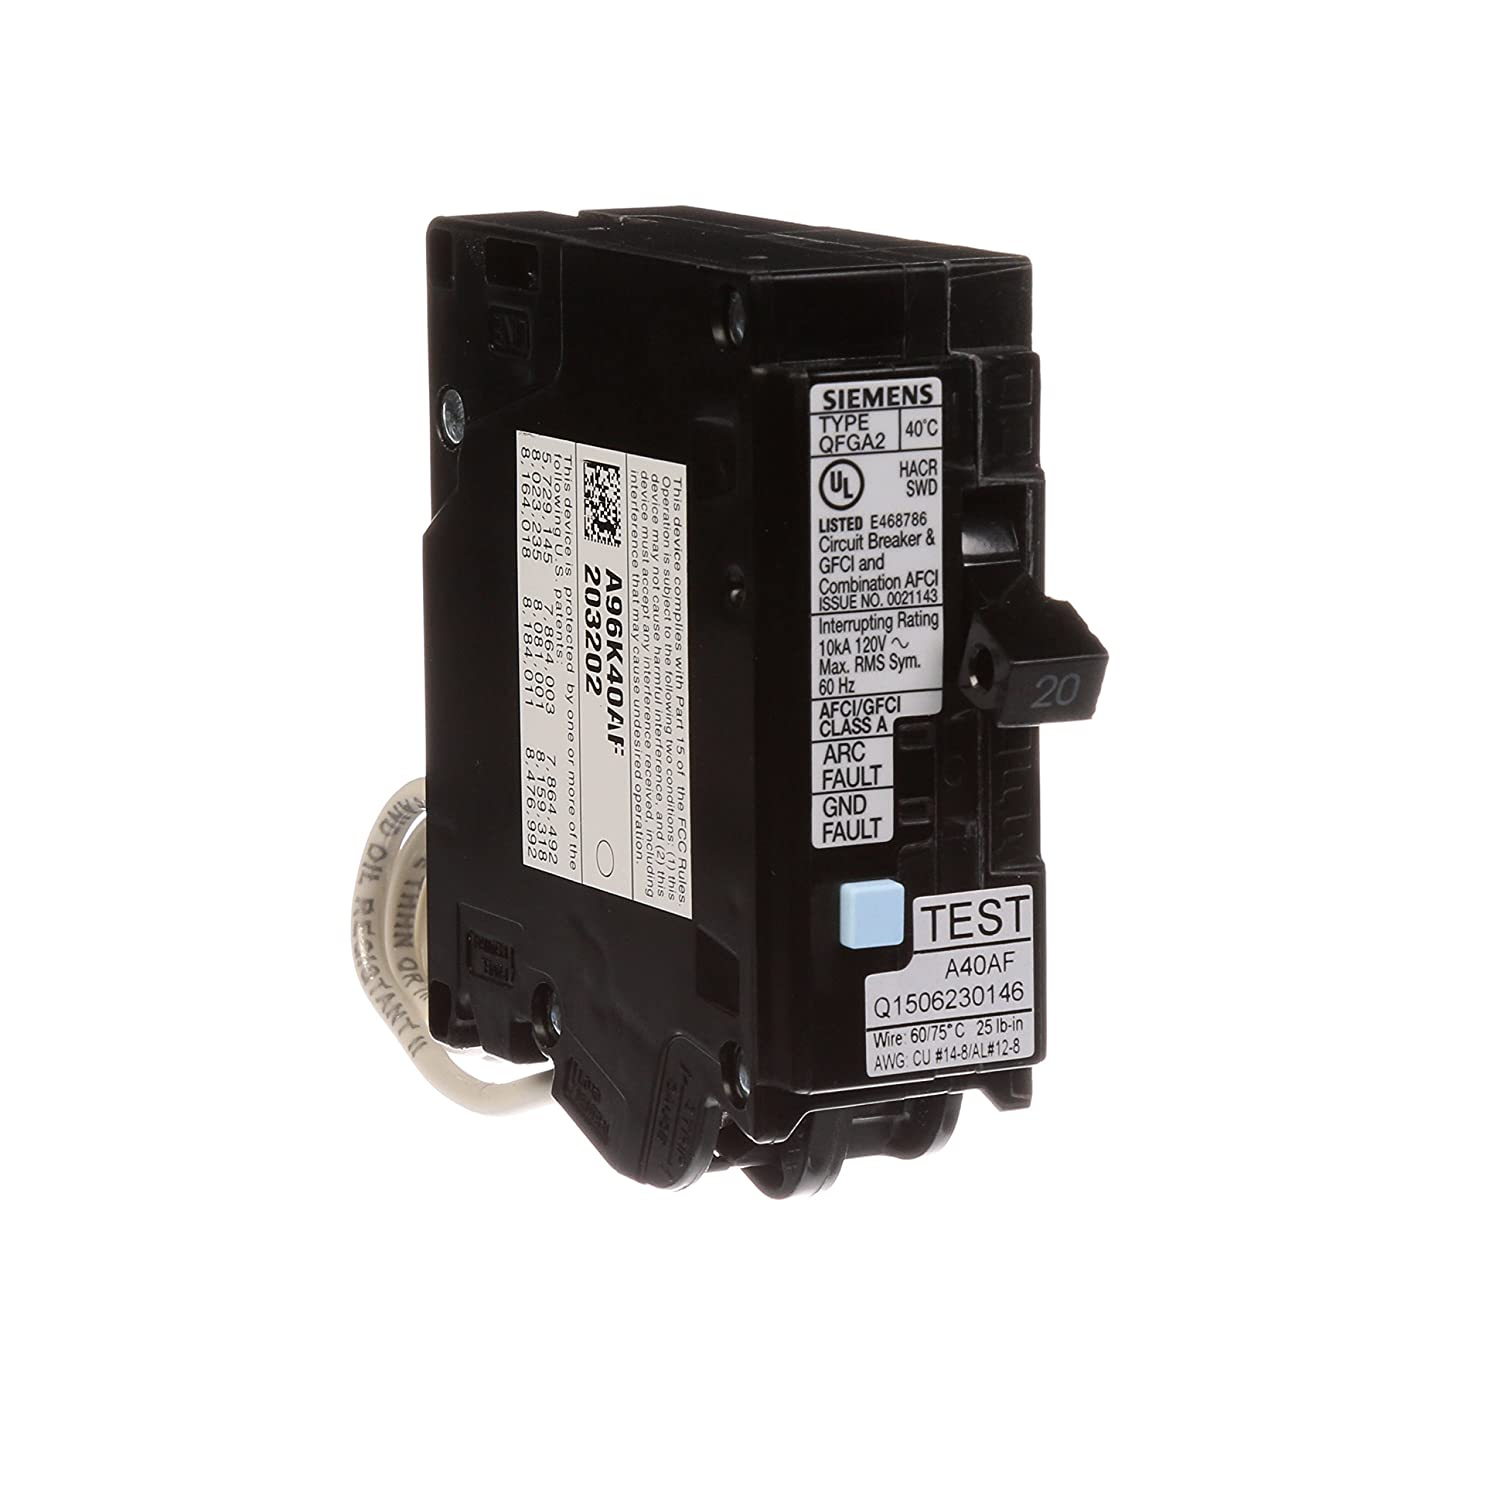 Siemens Q120df 20 Amp Afci Gfci Dual Function Circuit Breaker Plug Standards And Description Of Circuitbreakers Electrical On Load Center Style